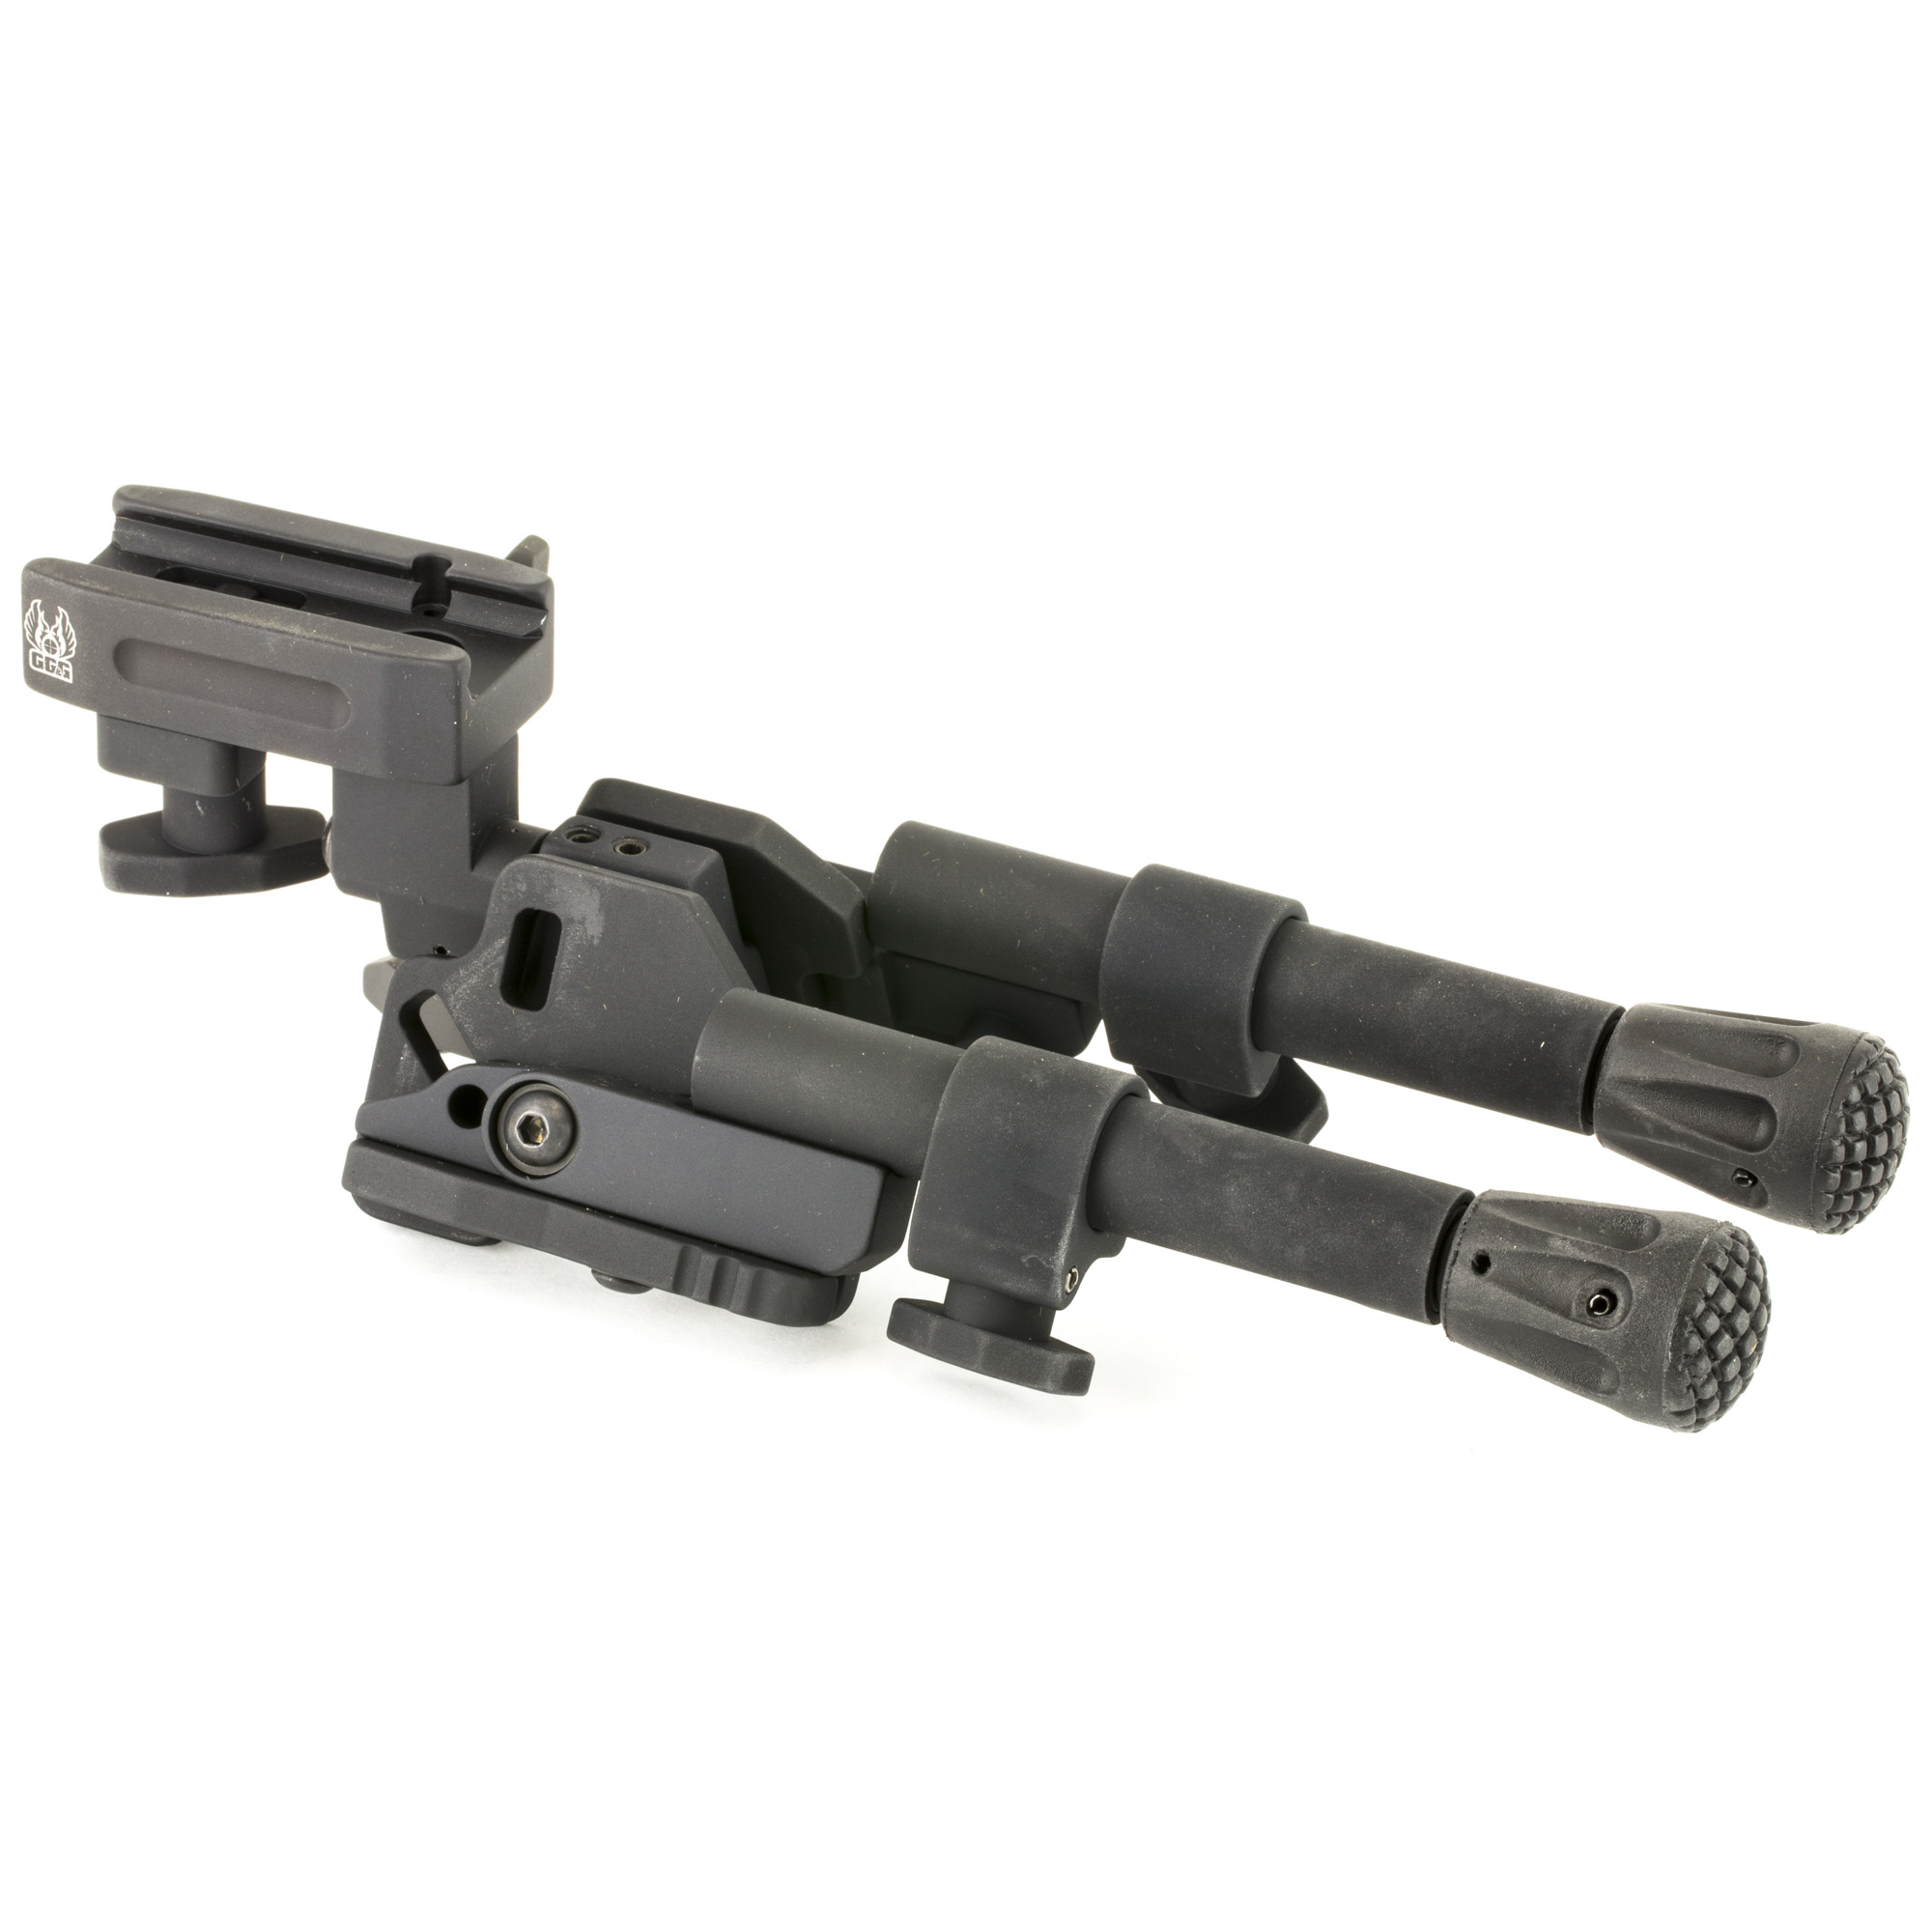 """GG&G's XDS-2C Compact Tactical Bipod is designed to accommodate the M14"""" AR-10"""" AR-30 and other large caliber rifles and carbines. It has a head that pans or swivels (20 degree degrees of panning capability to the left and right of the center position)"""" a head that cants from side to side (25 degree degrees of canting capability each side of center)"""" bipod legs that lock forward at a 45-degree angle for difficult terrain"""" and durable grippy rubber feet that grip more surfaces and are replaceable. When the Tactical Bipod legs are deployed and locked in the straight down position they can be independently adjusted from 6 5/8"""" to 8 1/4"""". Not yet rated for .50 firearms."""